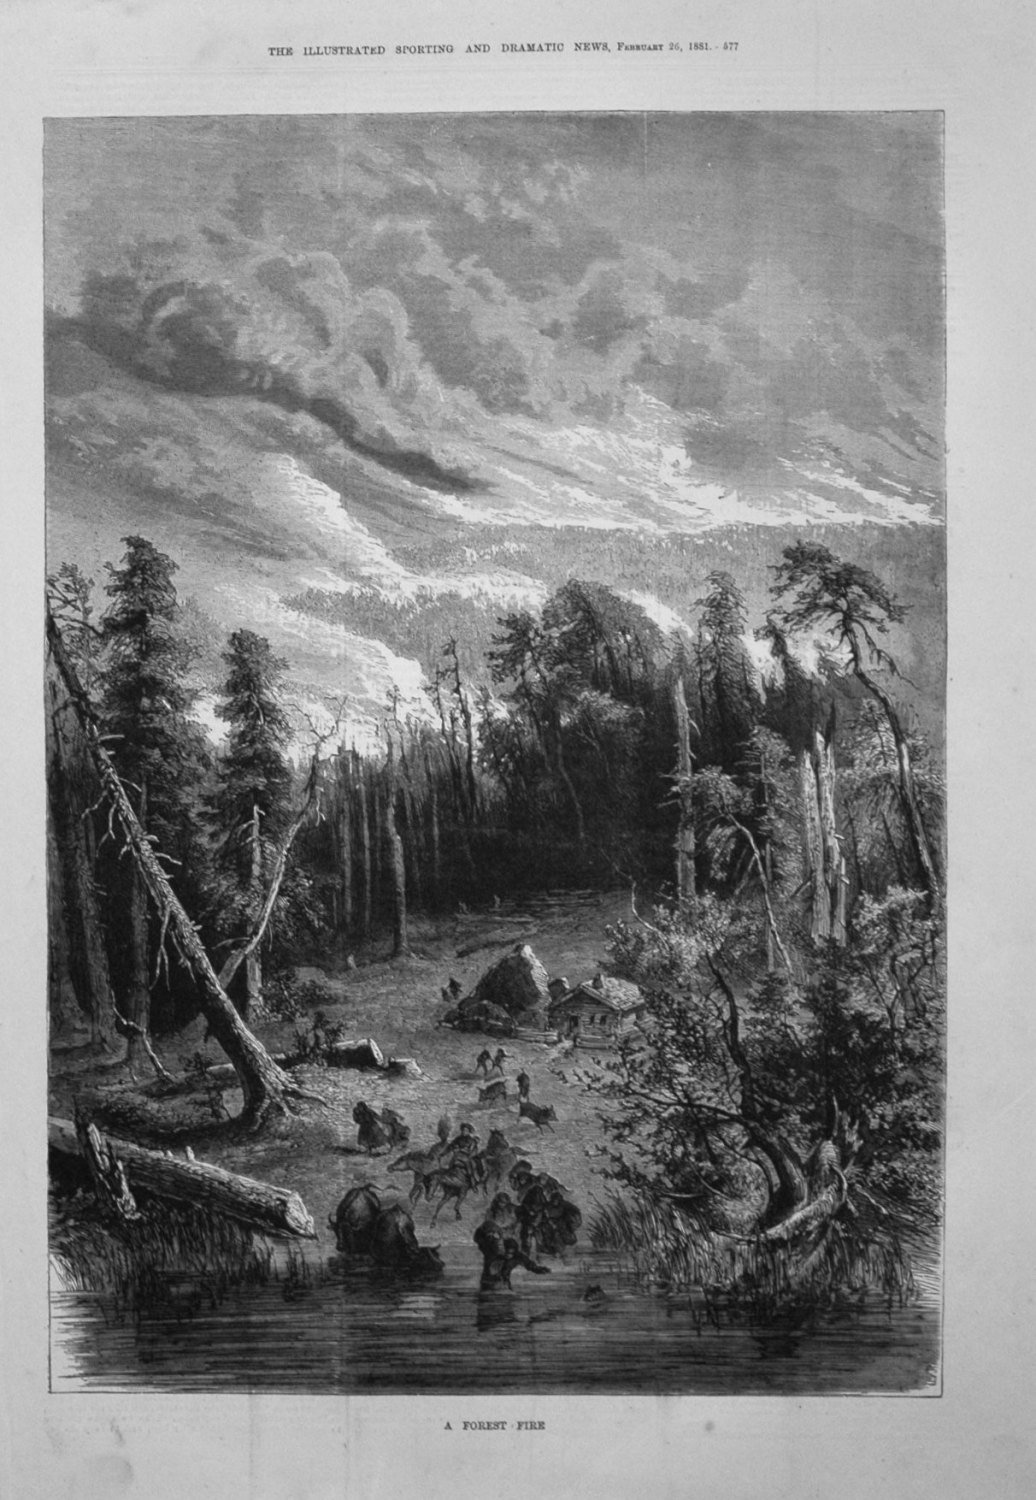 A Forest Fire. 1881